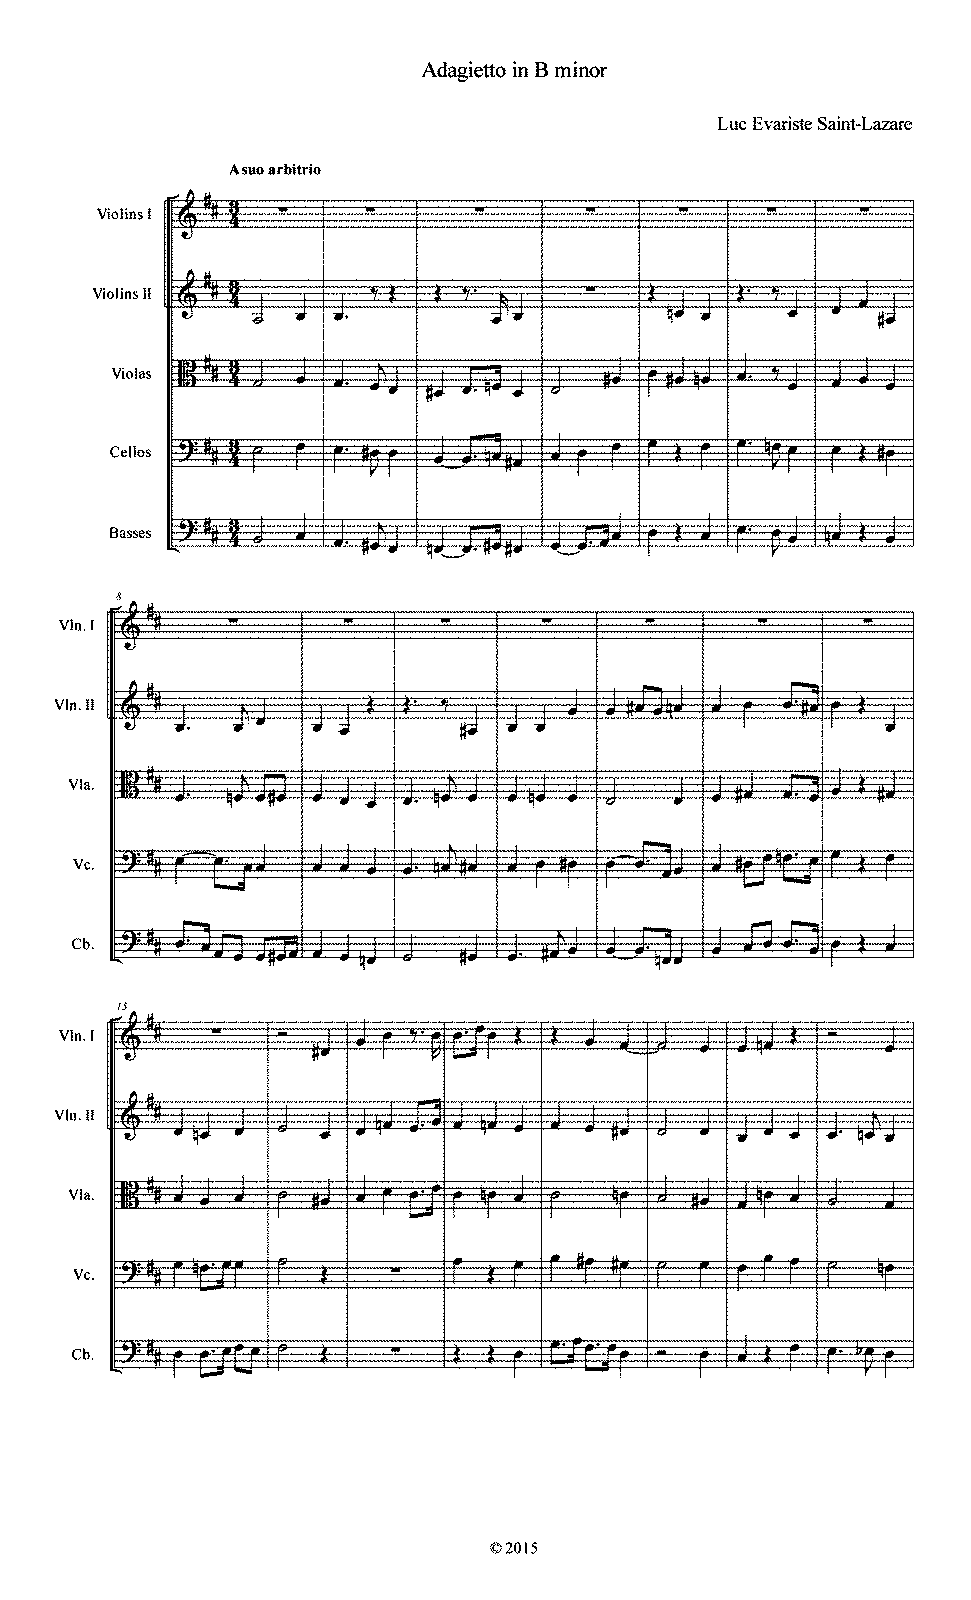 PMLP615501-Adagietto in B minor by Luc Evariste Saint-Lazare.pdf